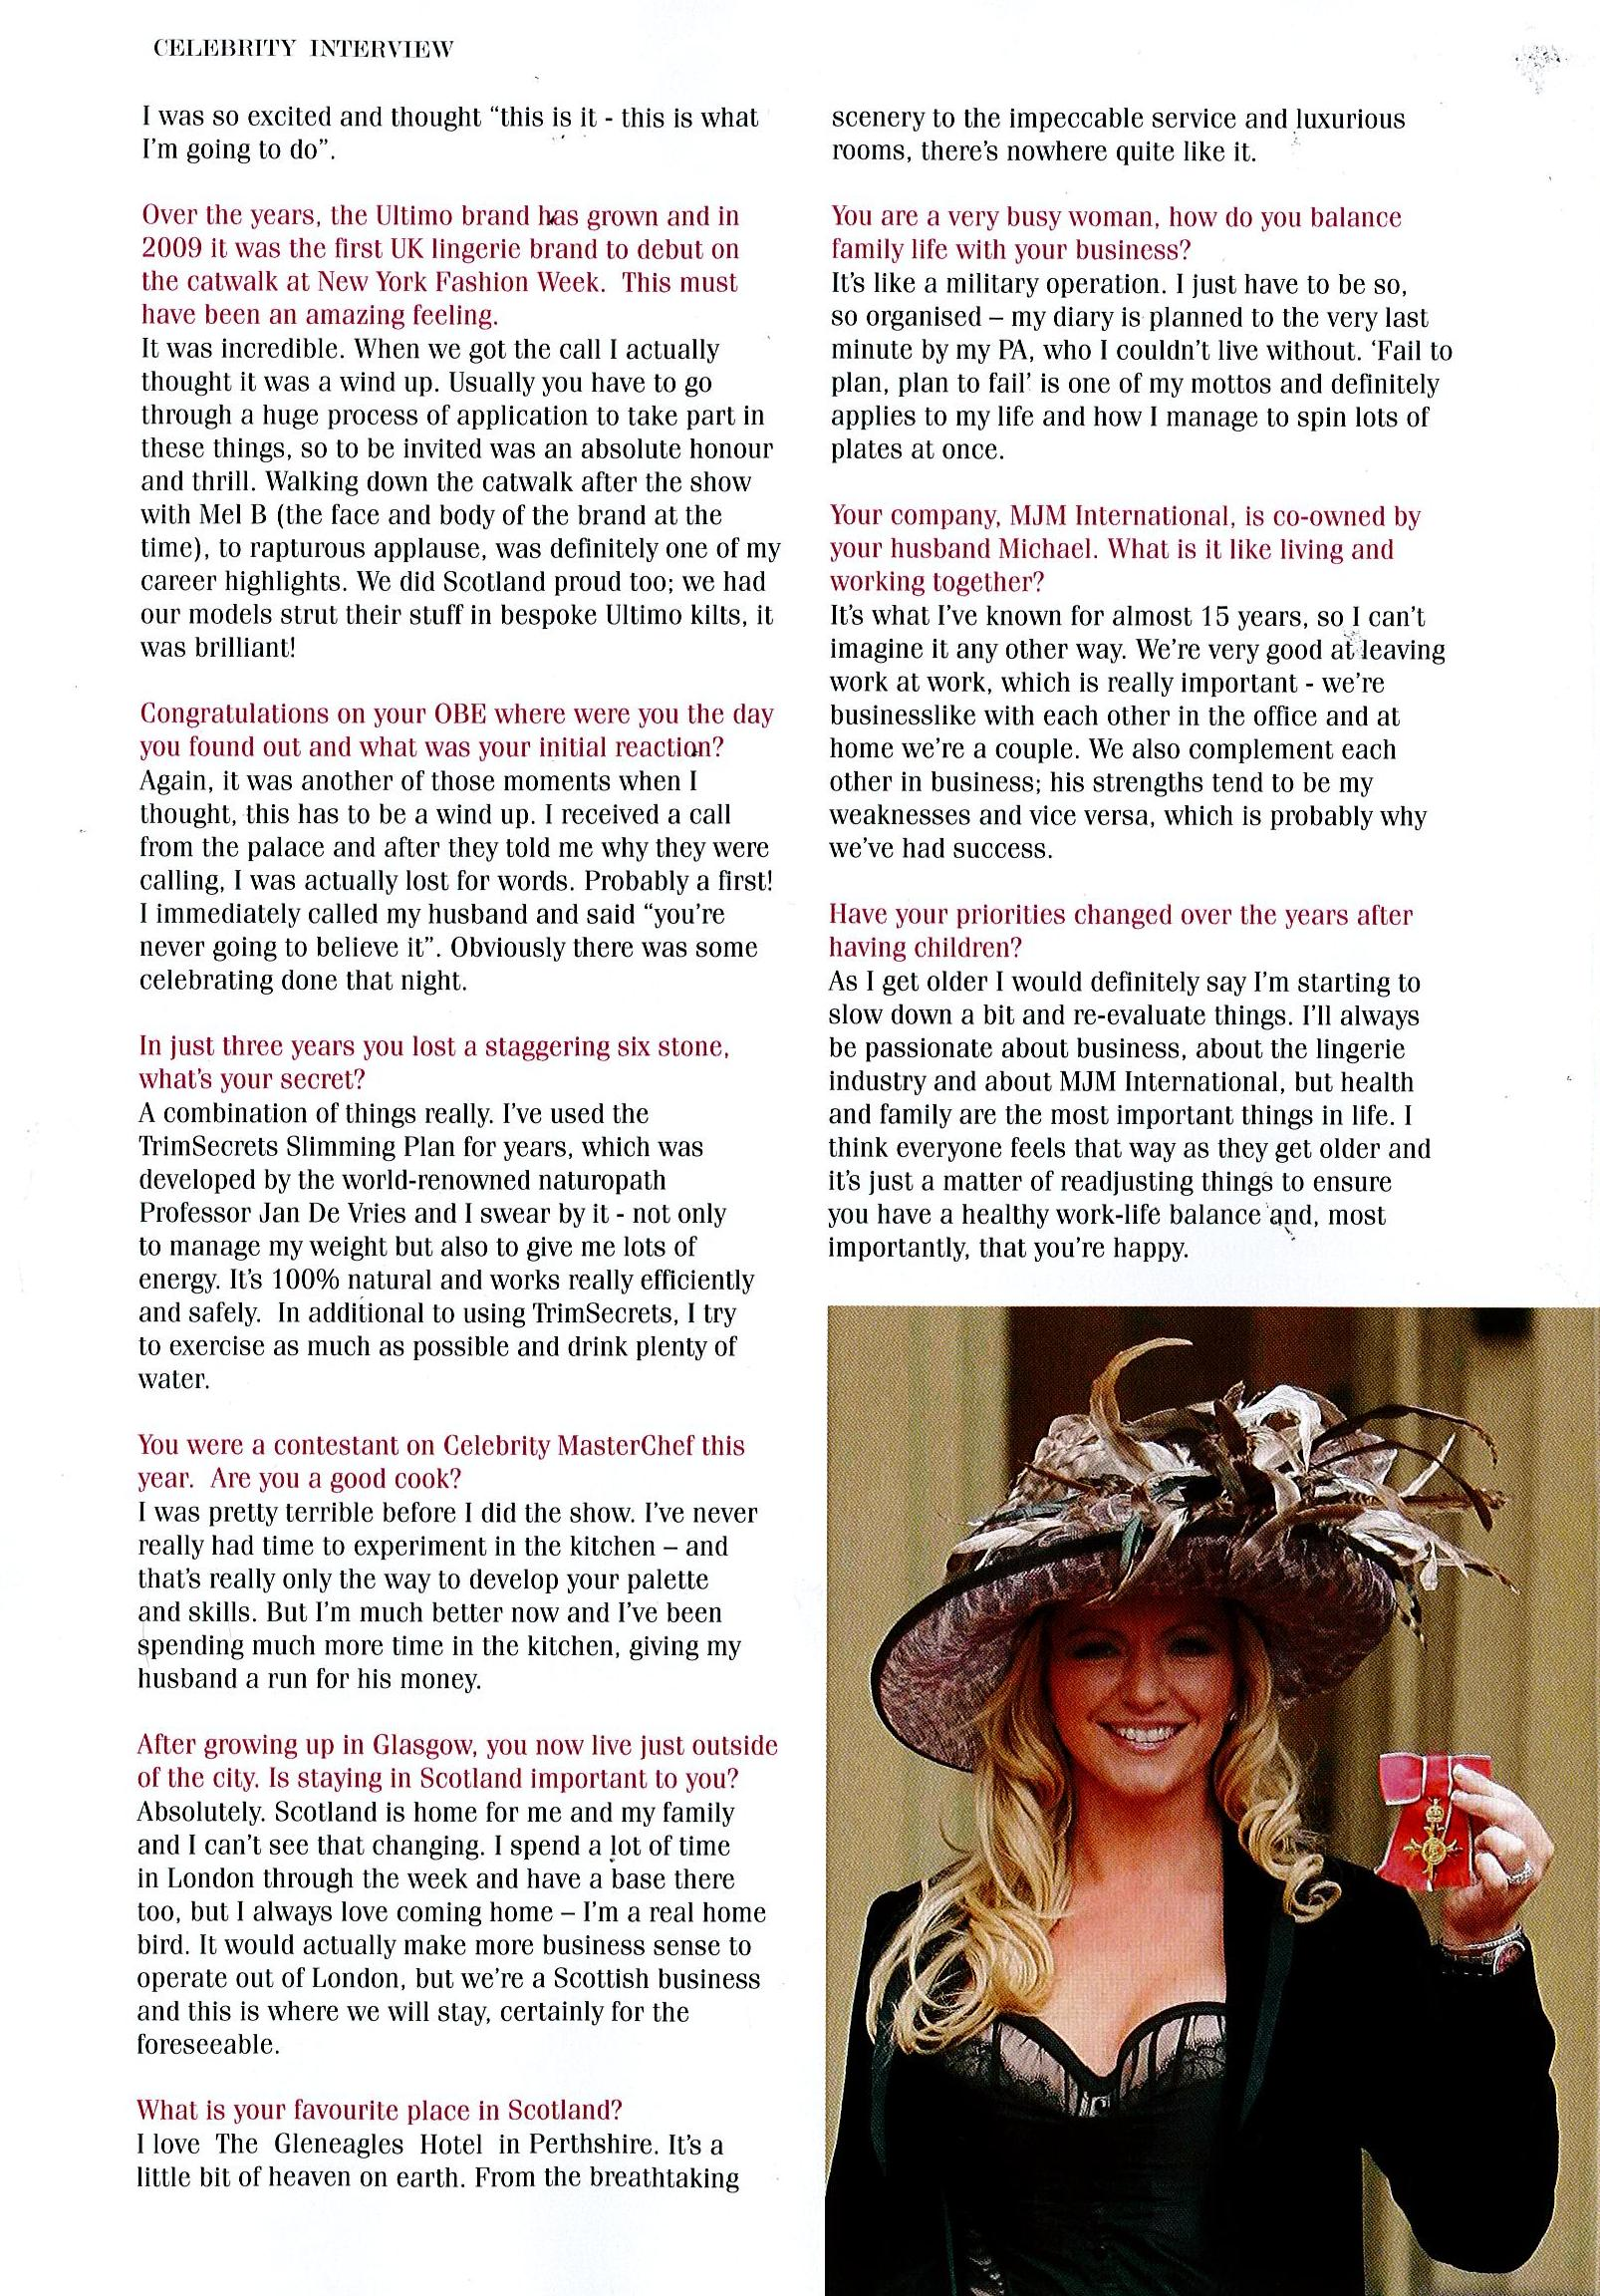 Scottish-Women-Magazine_Michelle-Mone-May-June-Issue-Page2